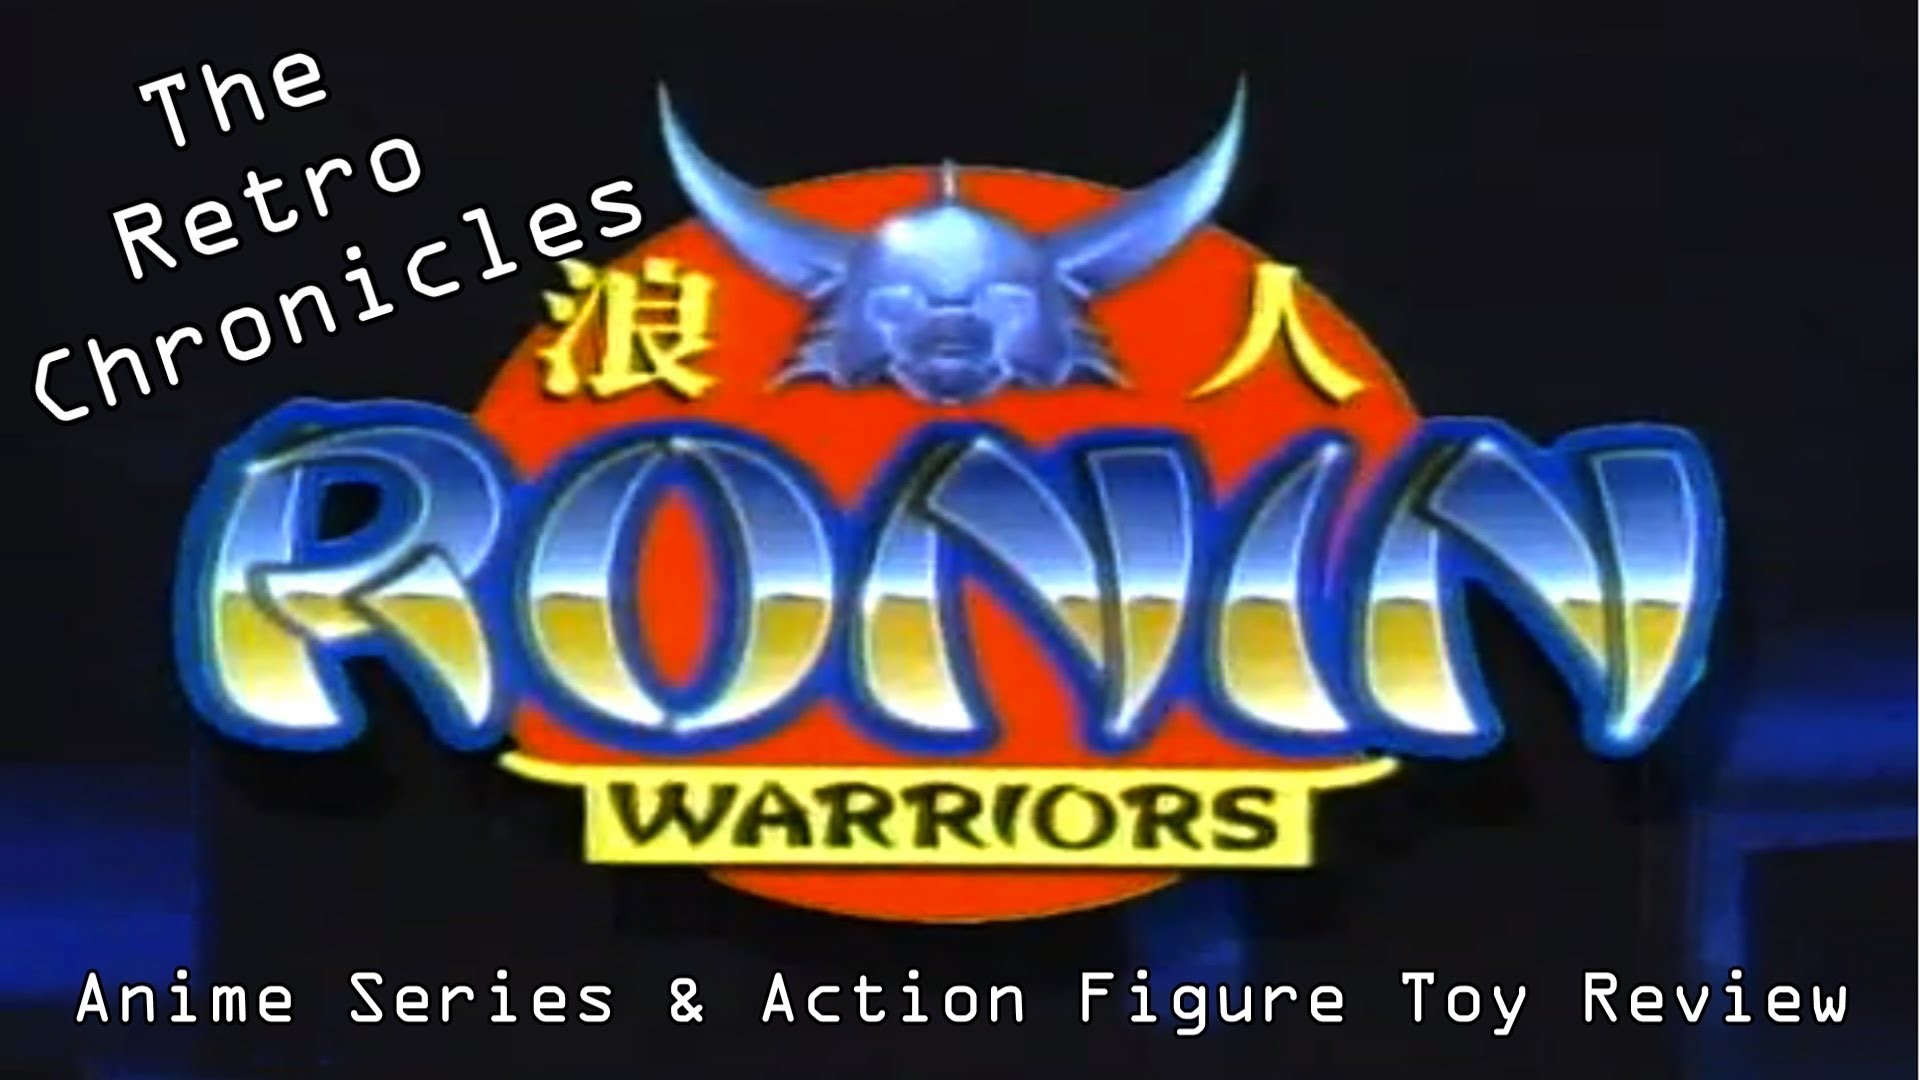 1920x1080 The Retro Chronicles - Ronin Warriors - Anime Series & Action Figure Toy  Review